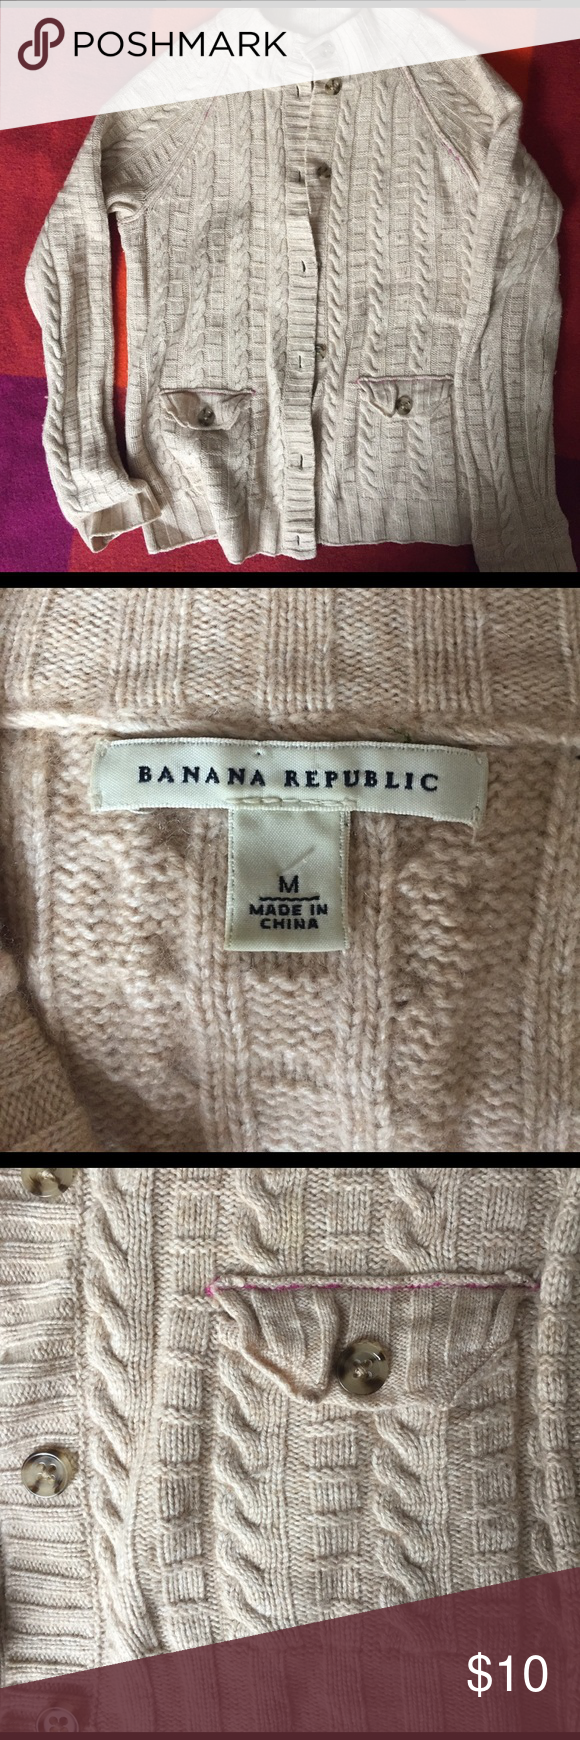 BR Tan Cable Knit Cardi Super soft, lambswool/cashmere blend mock neck cardi, minor piling, no stains/holes. Banana Republic Sweaters Cardigans